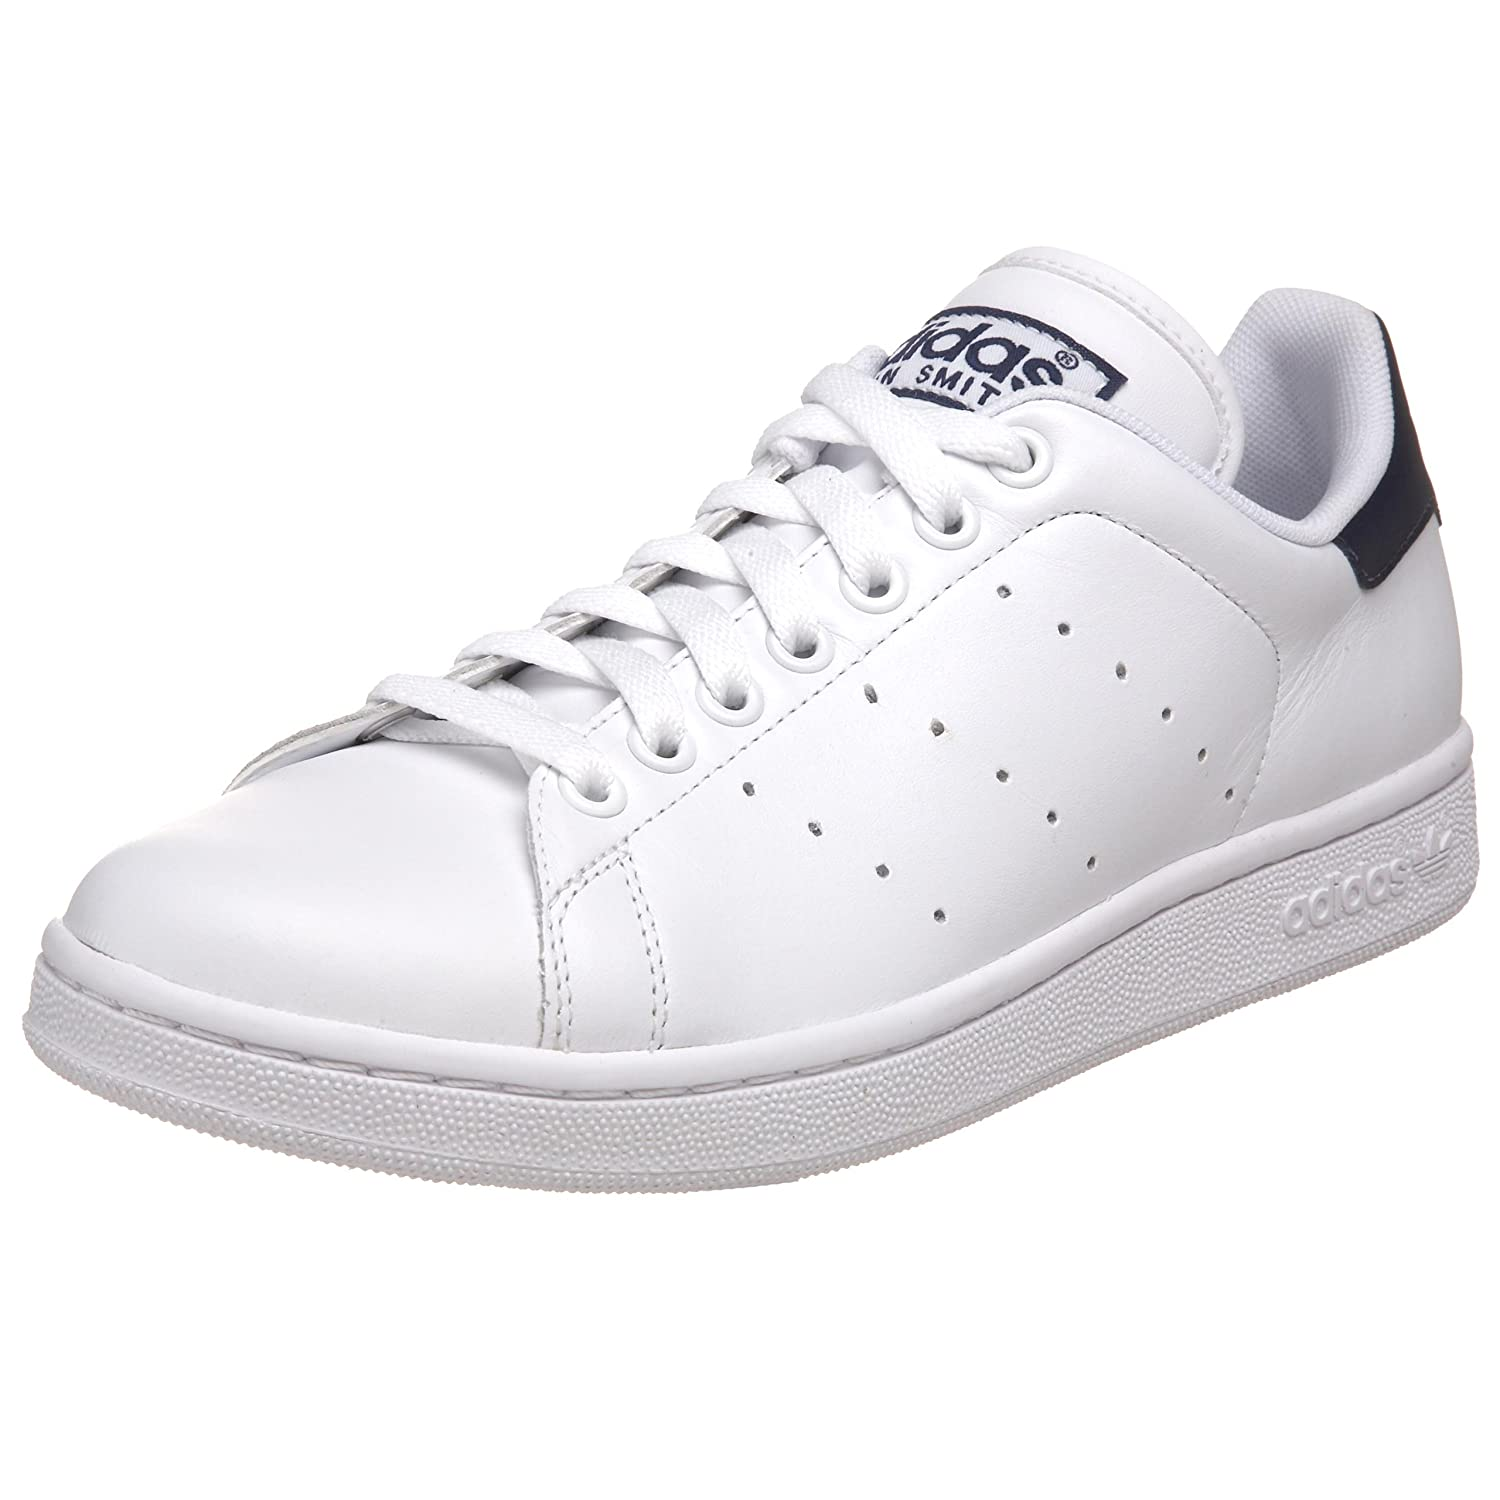 outlet store 16f4e b75e3 Adidas - Stan Smith 2 Mens Shoes In White / White / Navy ...